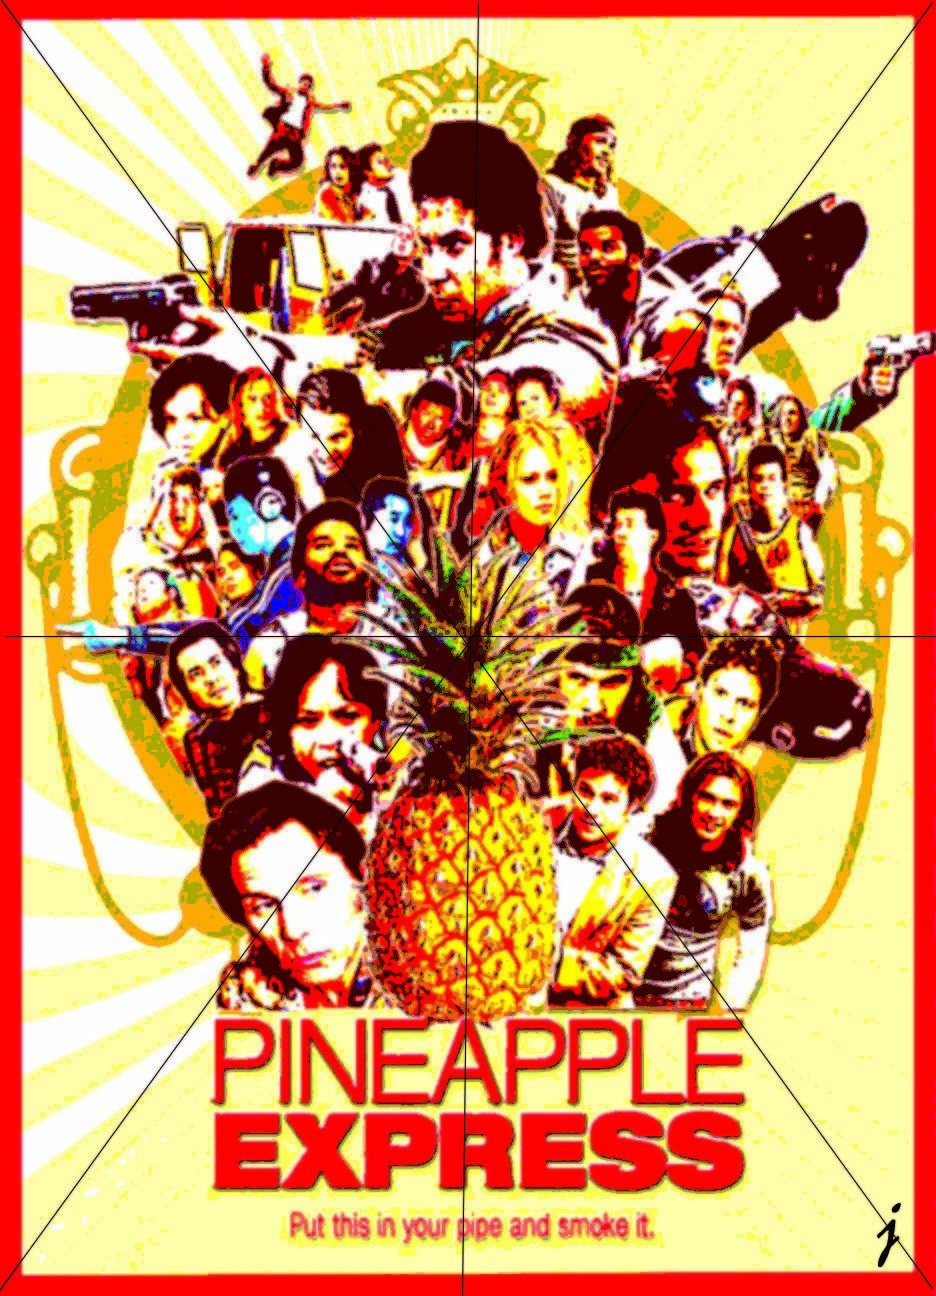 pineapple express images fan movie poster hd wallpaper